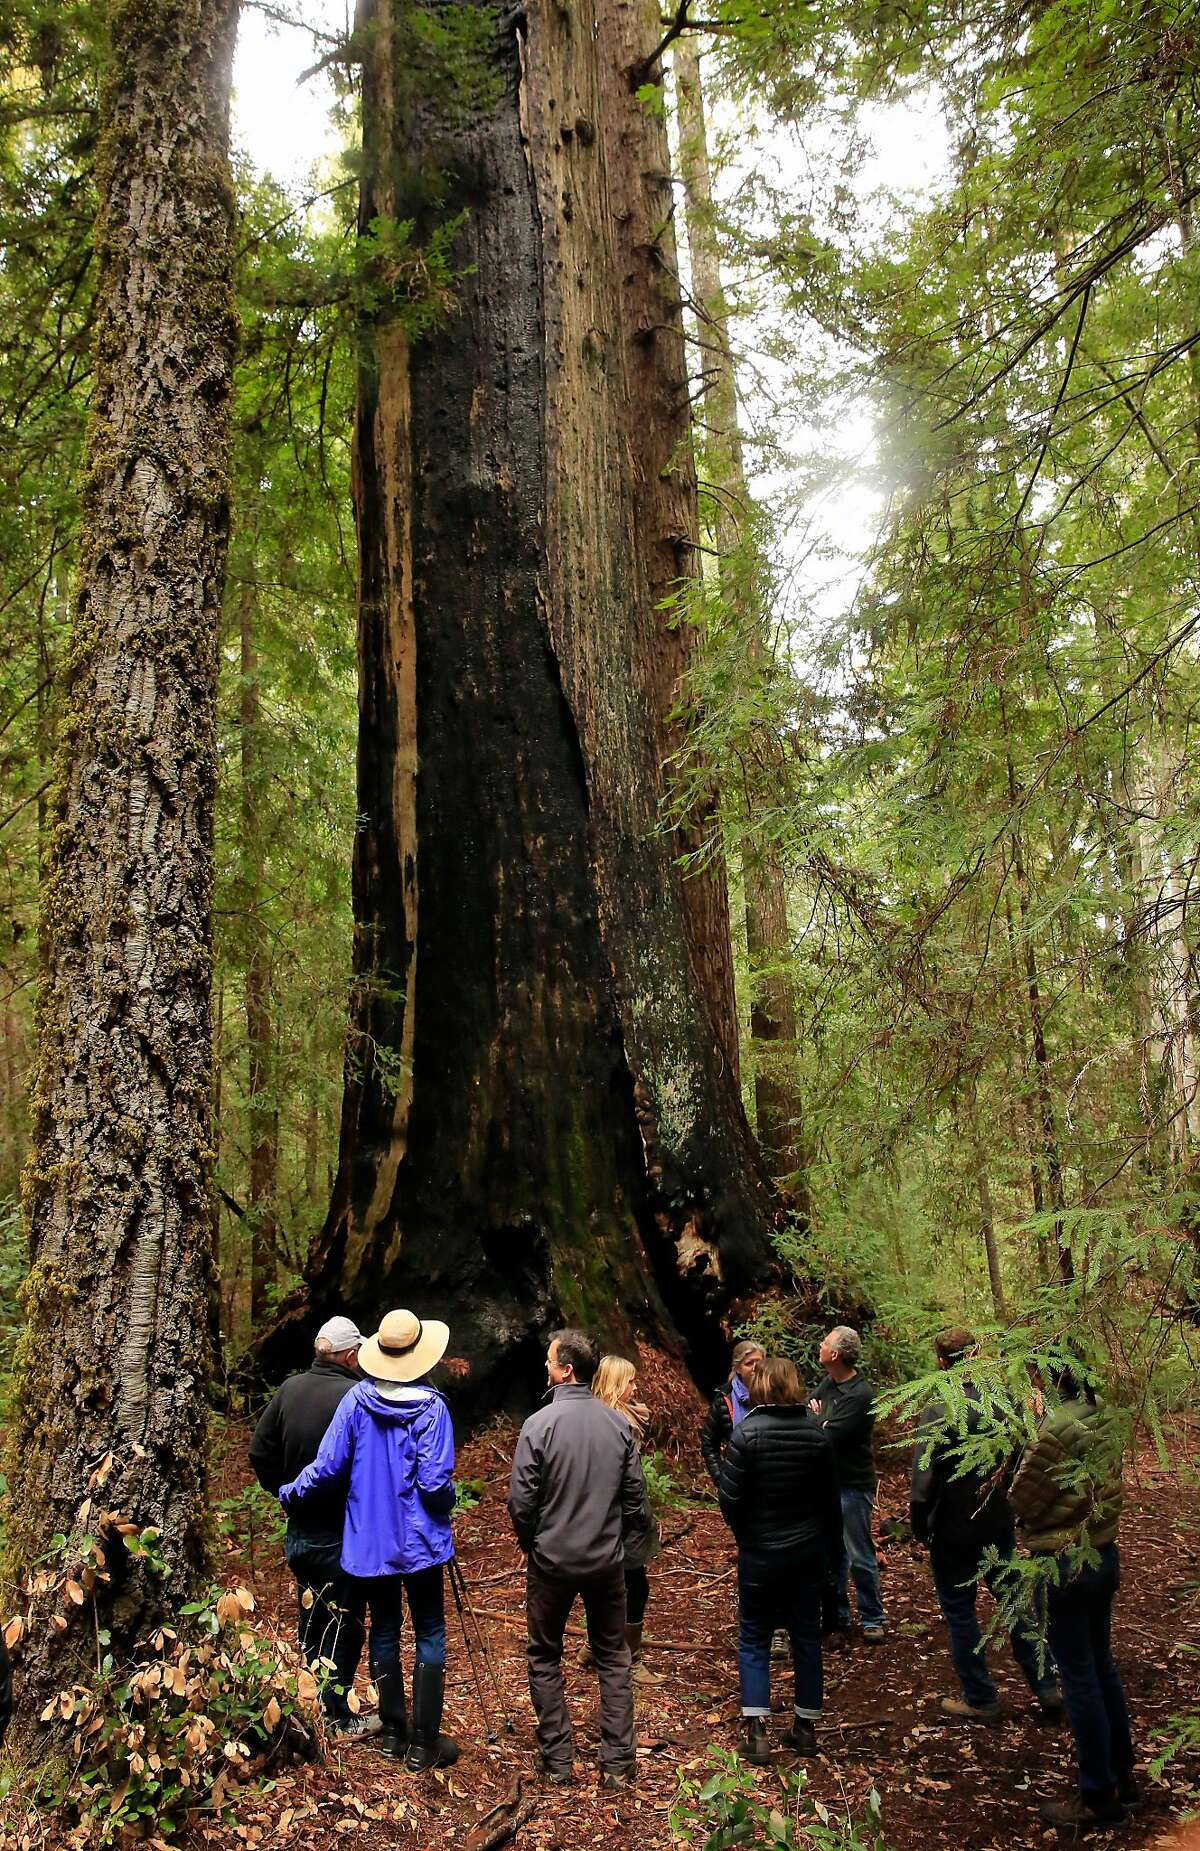 A group of visitors tour the McApin Tree which measure 19 feet across and is believed to be over 1,000 years old, as seen on Fri. March 9, 2018, in Cazadero, Calif. The Save the Redwoods League has acquired the 730 acres property which will be known as the Harold Richardson Redwoods Preserve.